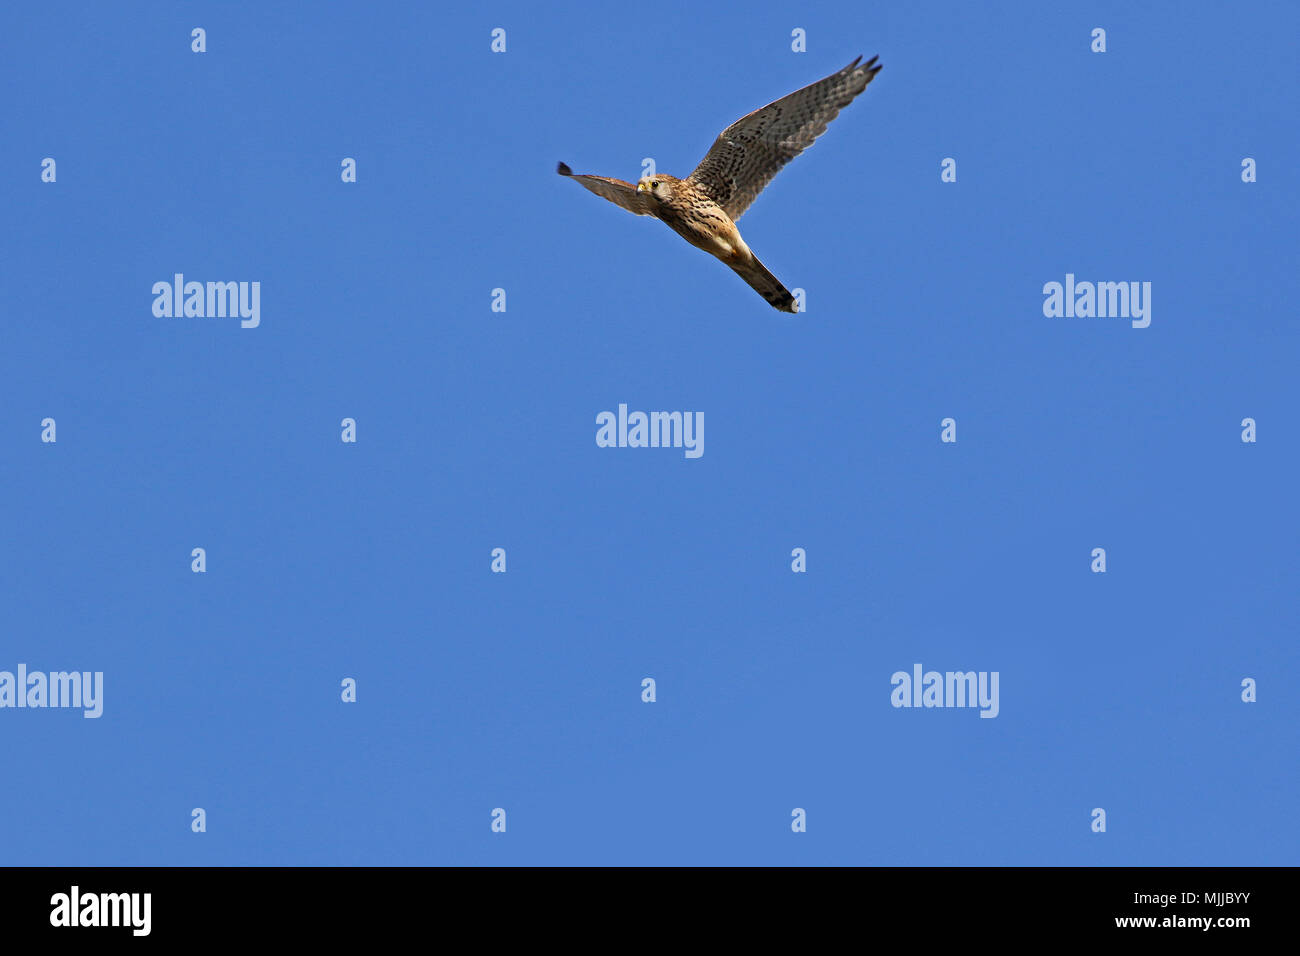 female kestrel Latin name falco tinnunculus with wings outstretched soaring upwards into the sky in late January in Italy - Stock Image